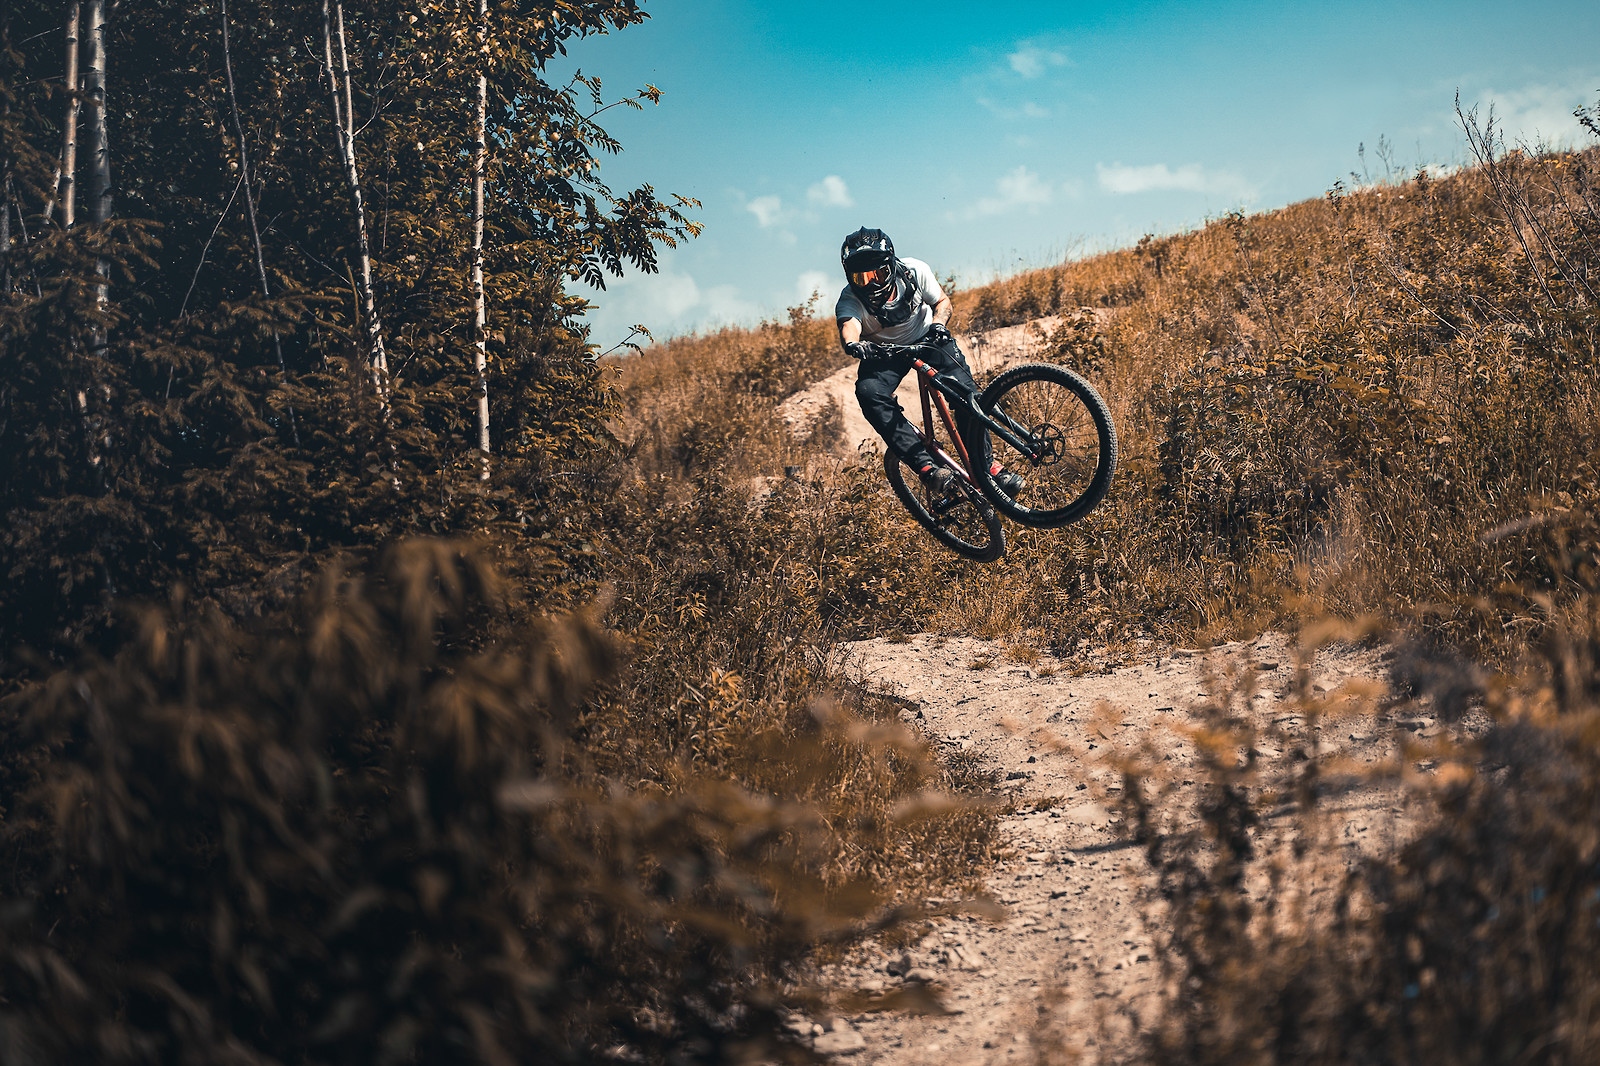 summer vibes - Banan - Mountain Biking Pictures - Vital MTB